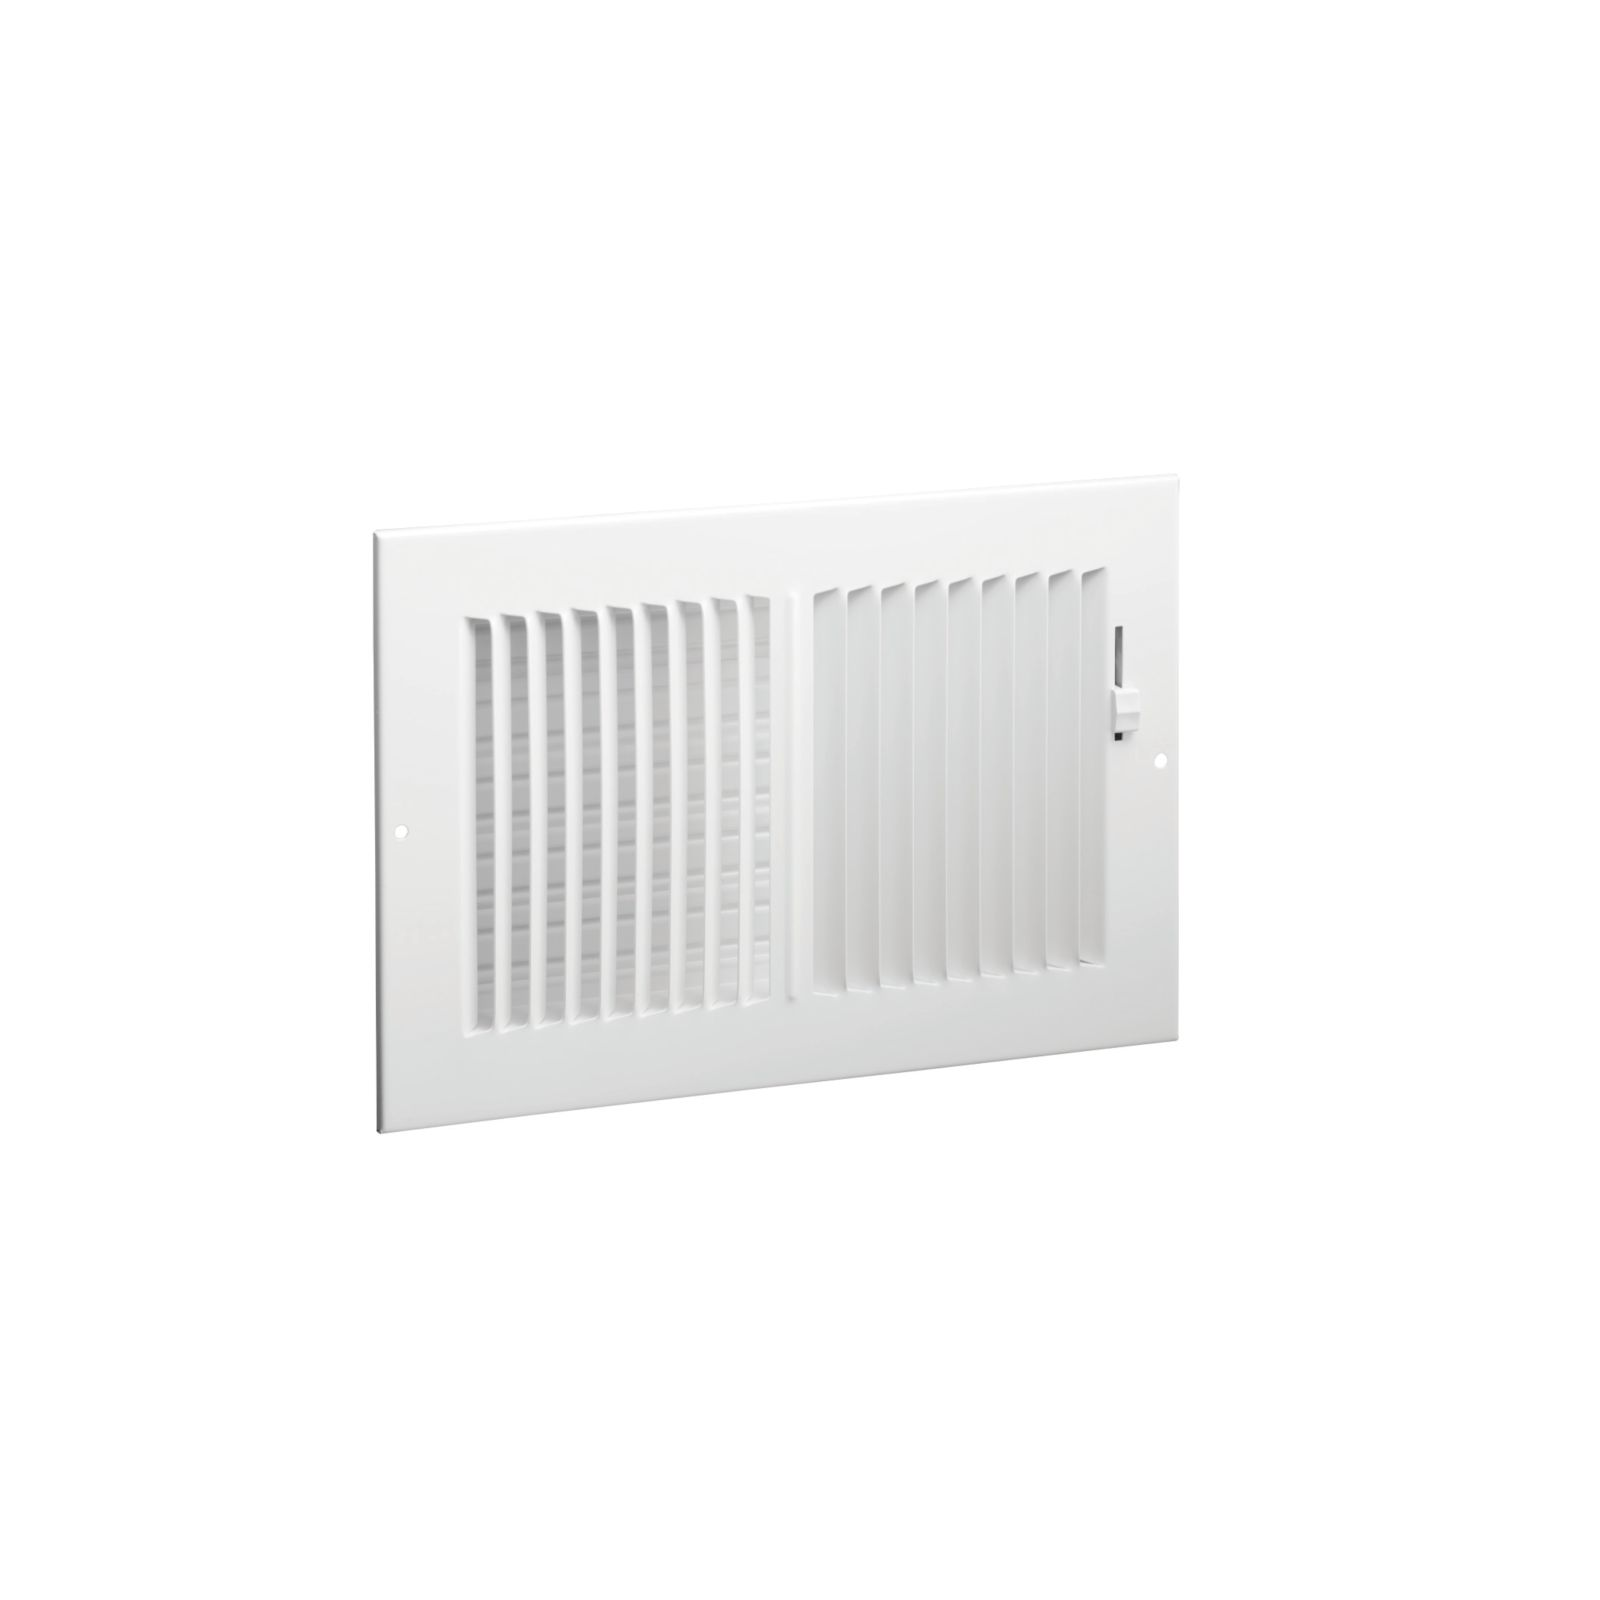 "Hart & Cooley 043829 - #682 Steel 2-Way Sidewall/Ceiling Register, Multi-Shutter Damper with Plastic Handle, White, 10"" X 6"""